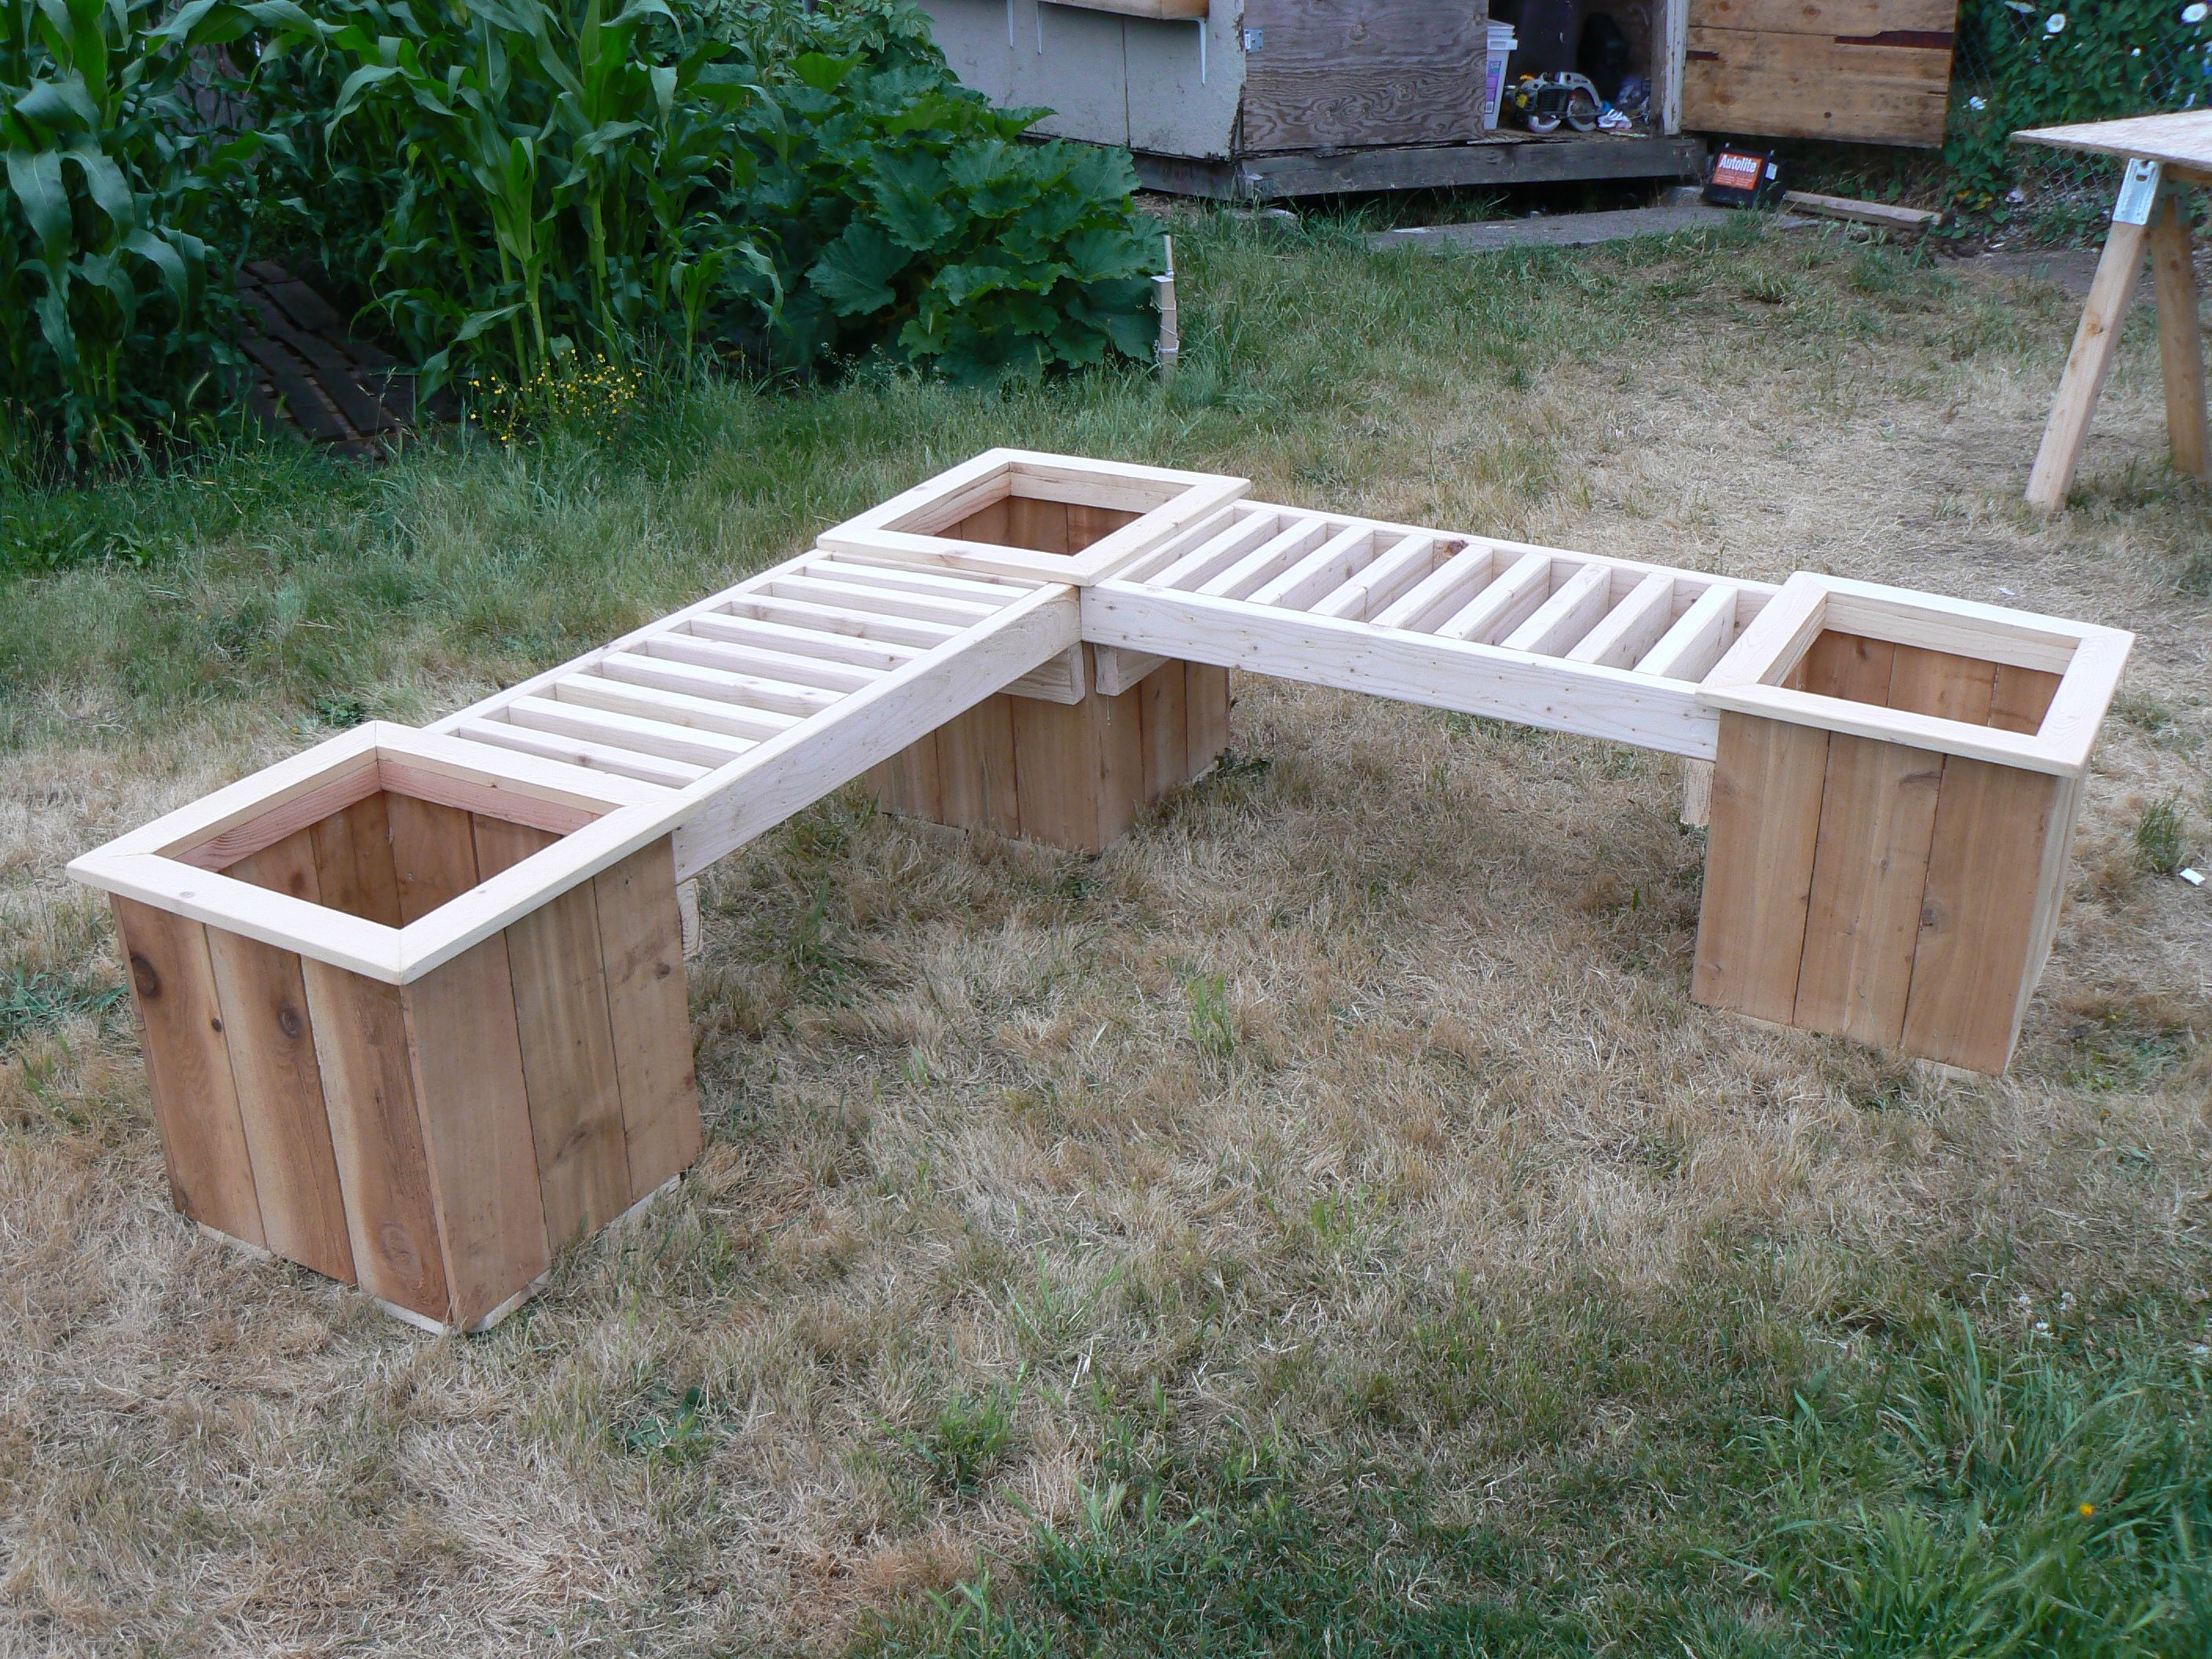 L Shaped Planter Box Bench With Planters Gretchen 39 S